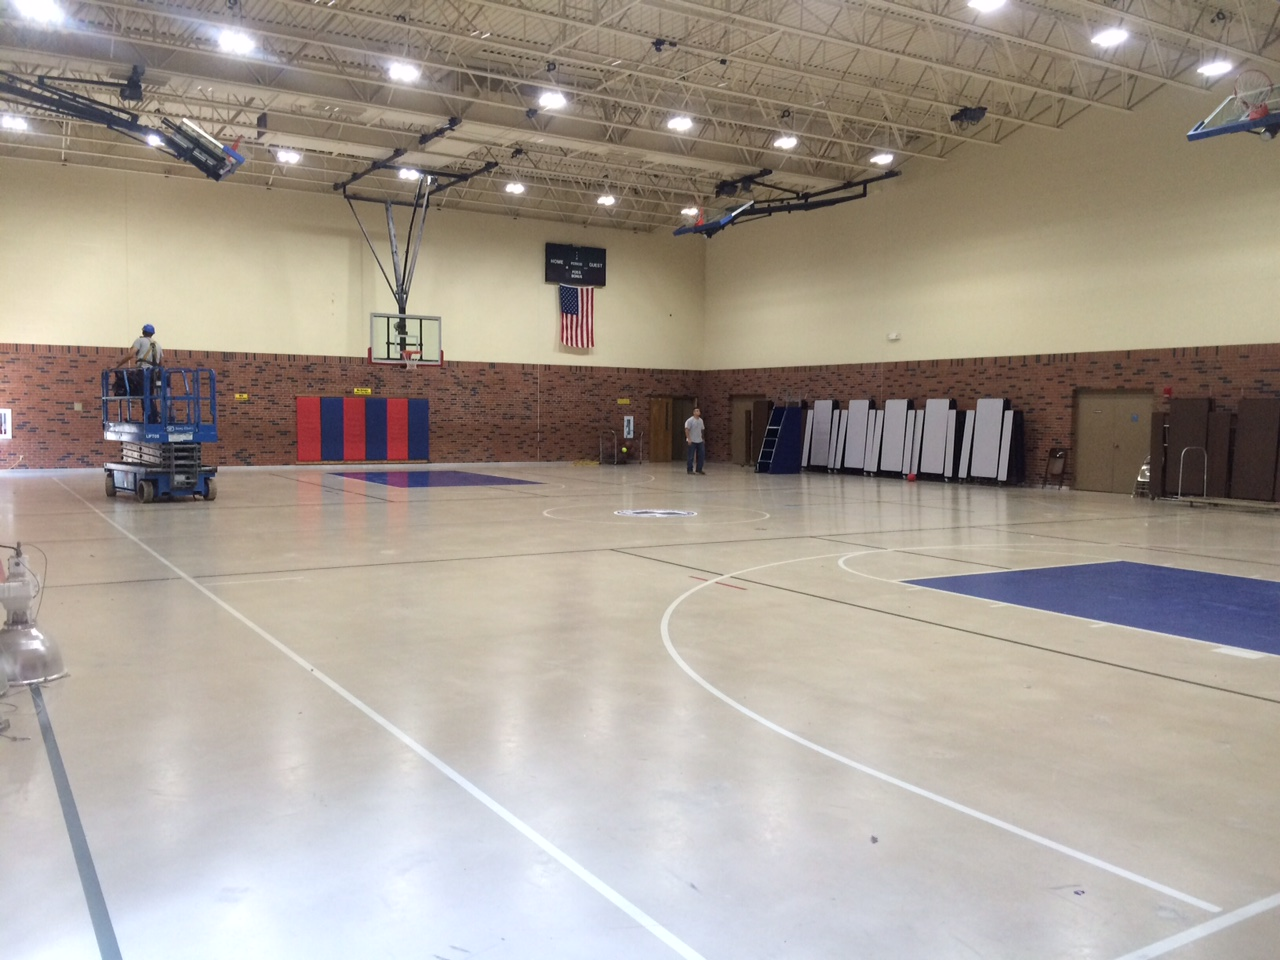 Classical School of Wichita partners with Wichita electrician for upgraded school gymnasium lighting